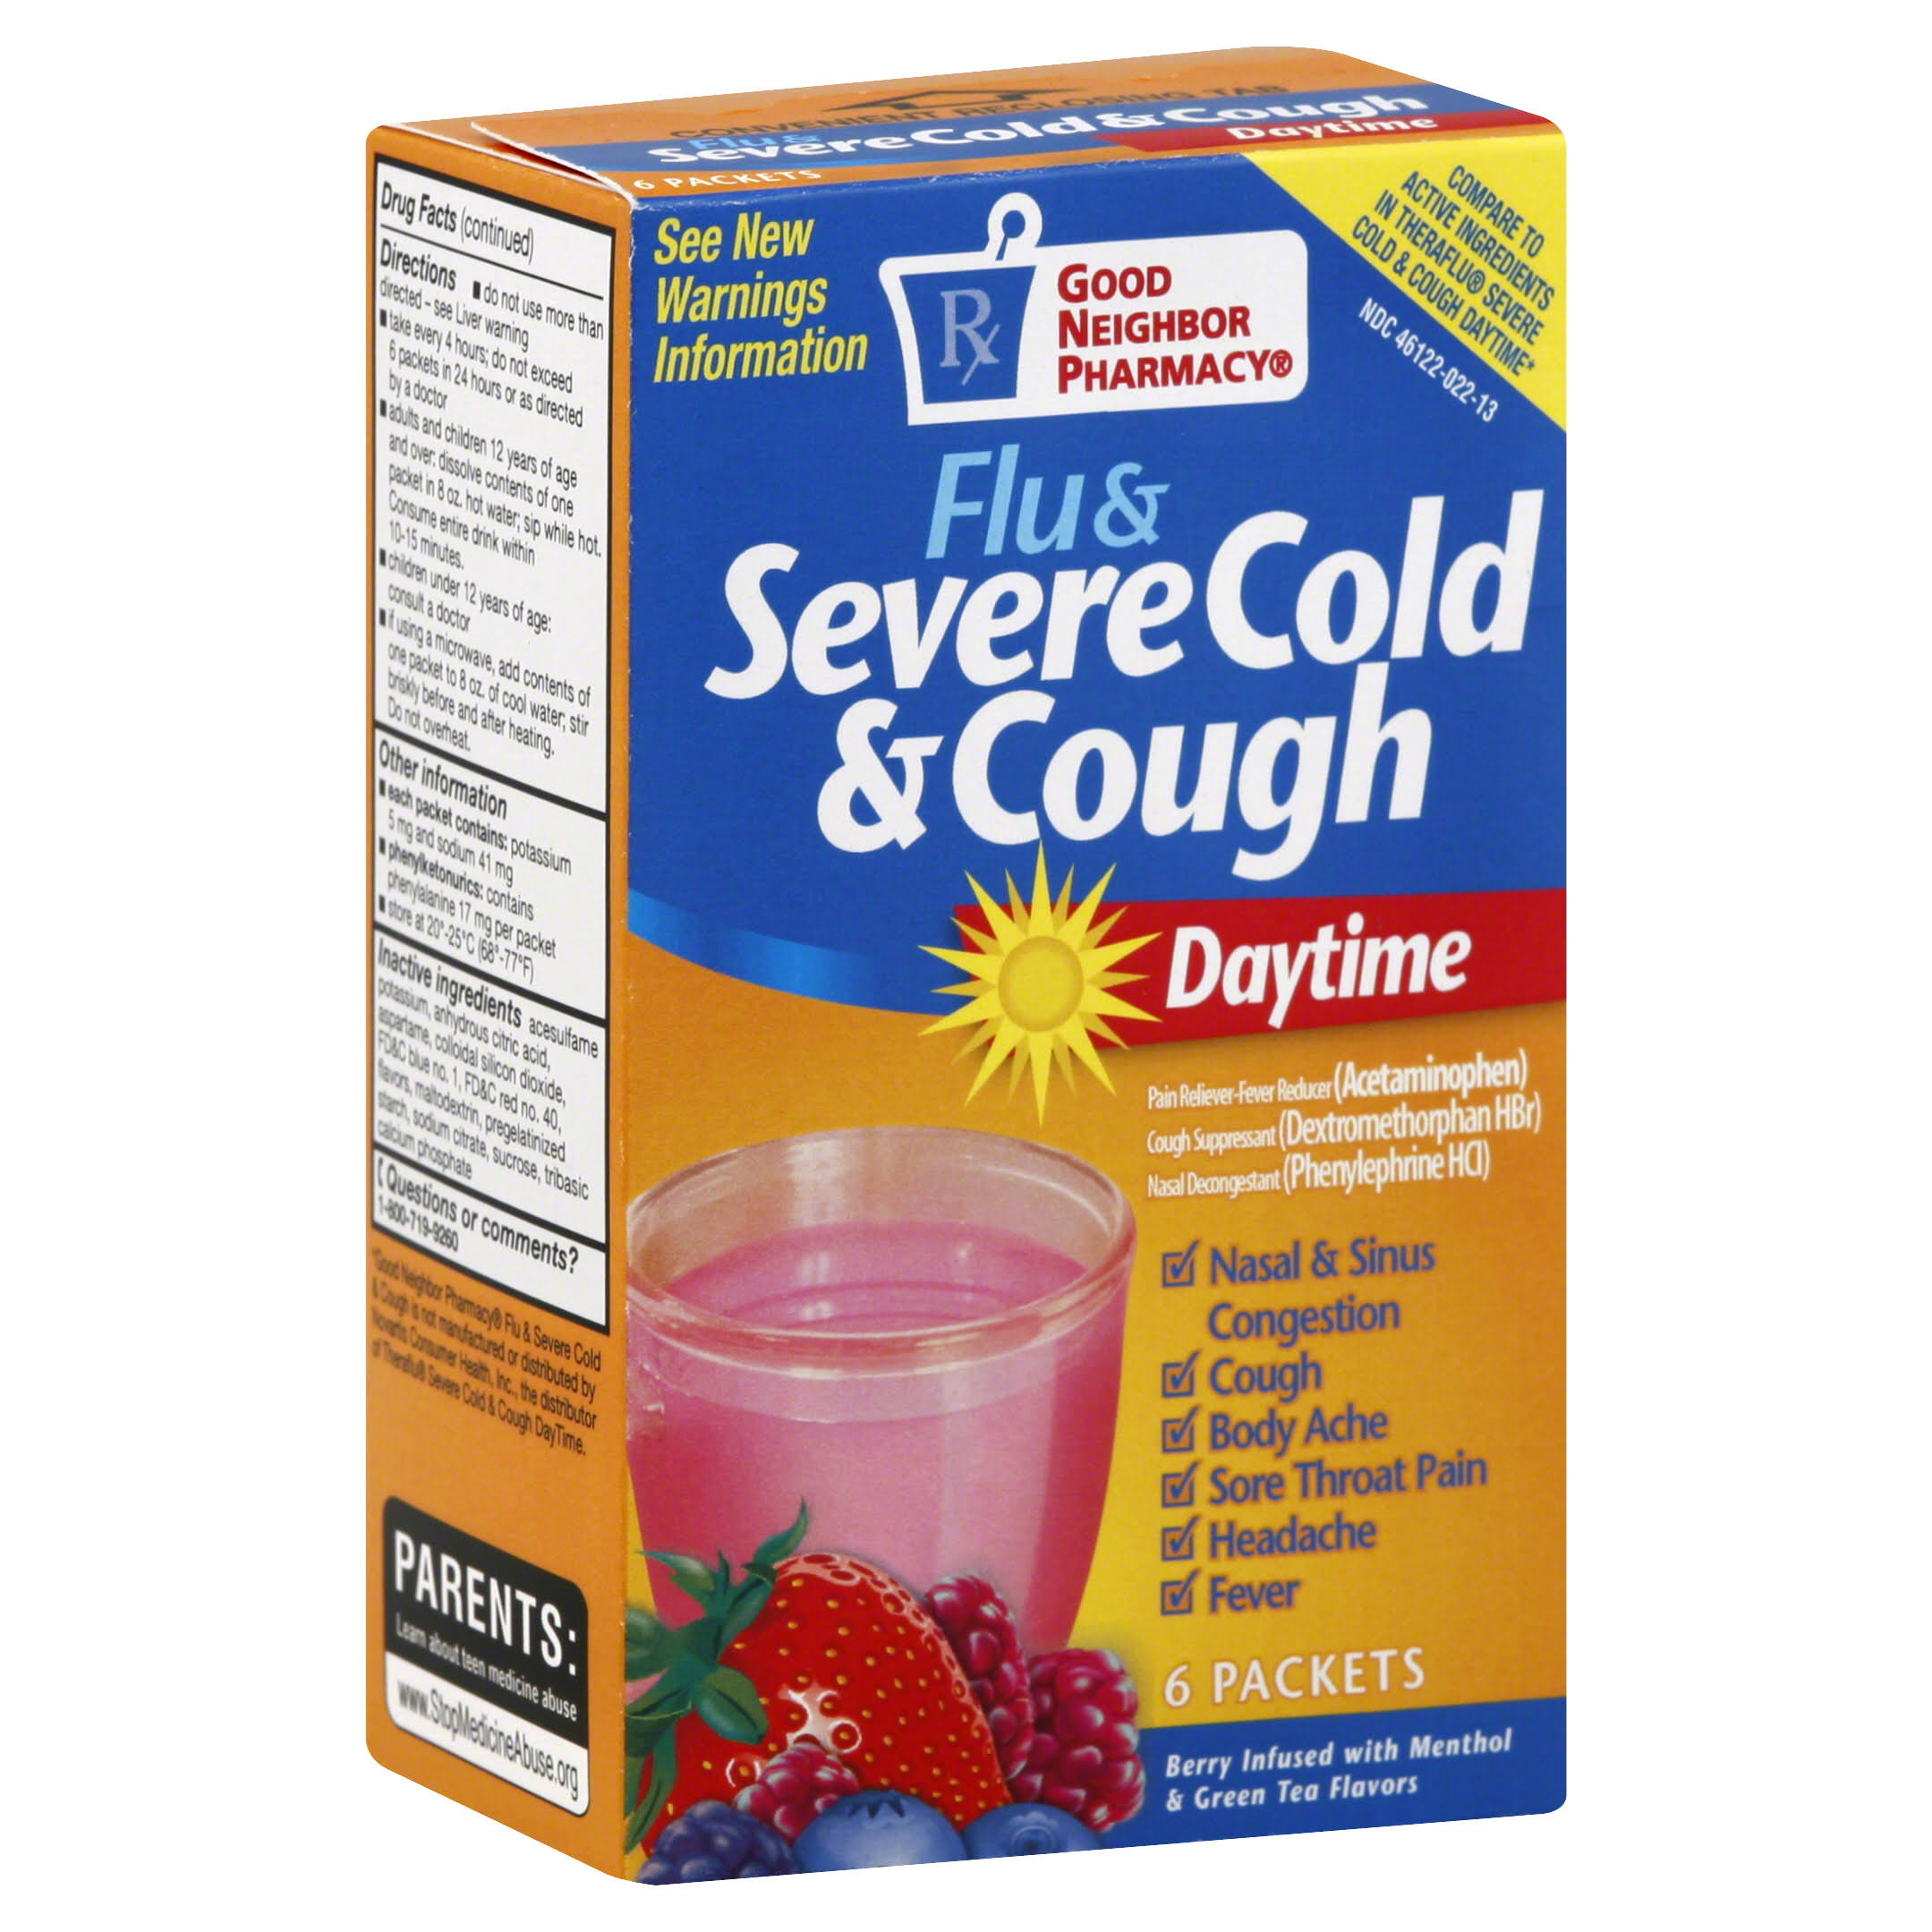 Good Neighbor Pharmacy Flu & Severe Cold & Cough Medicine, Daytime, Berry Infused with Menthol & Green Tea Flavors - 6 packets